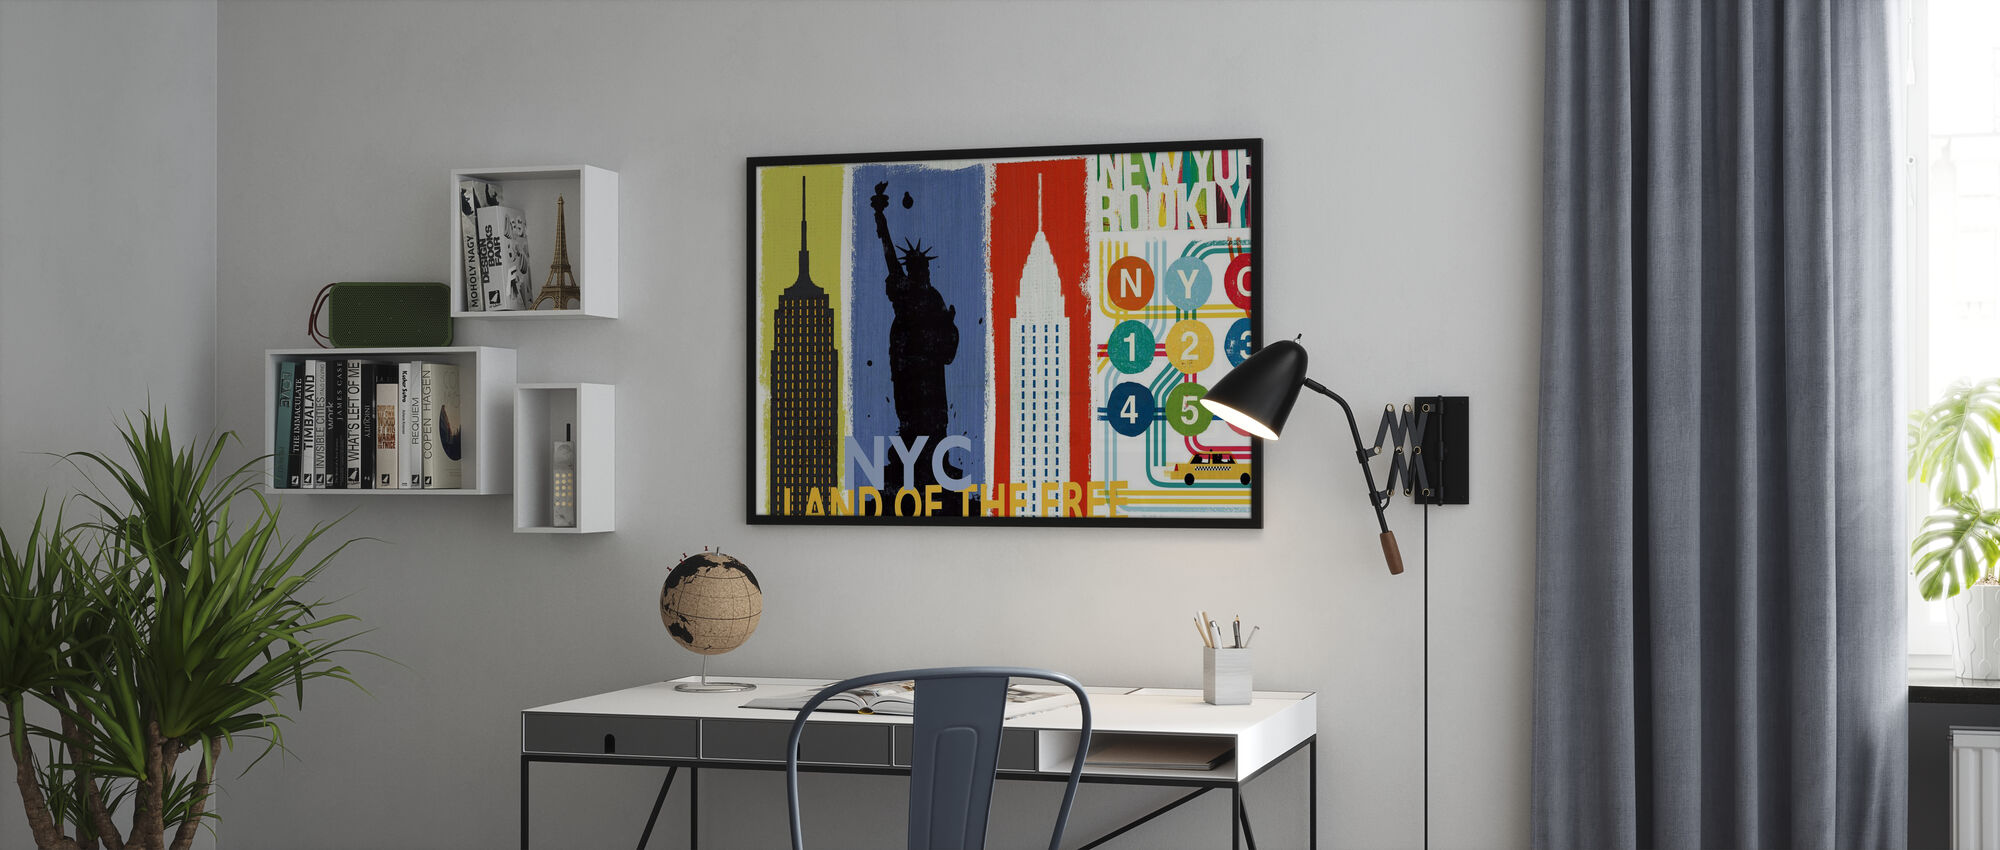 New York City Life II - Poster - Office